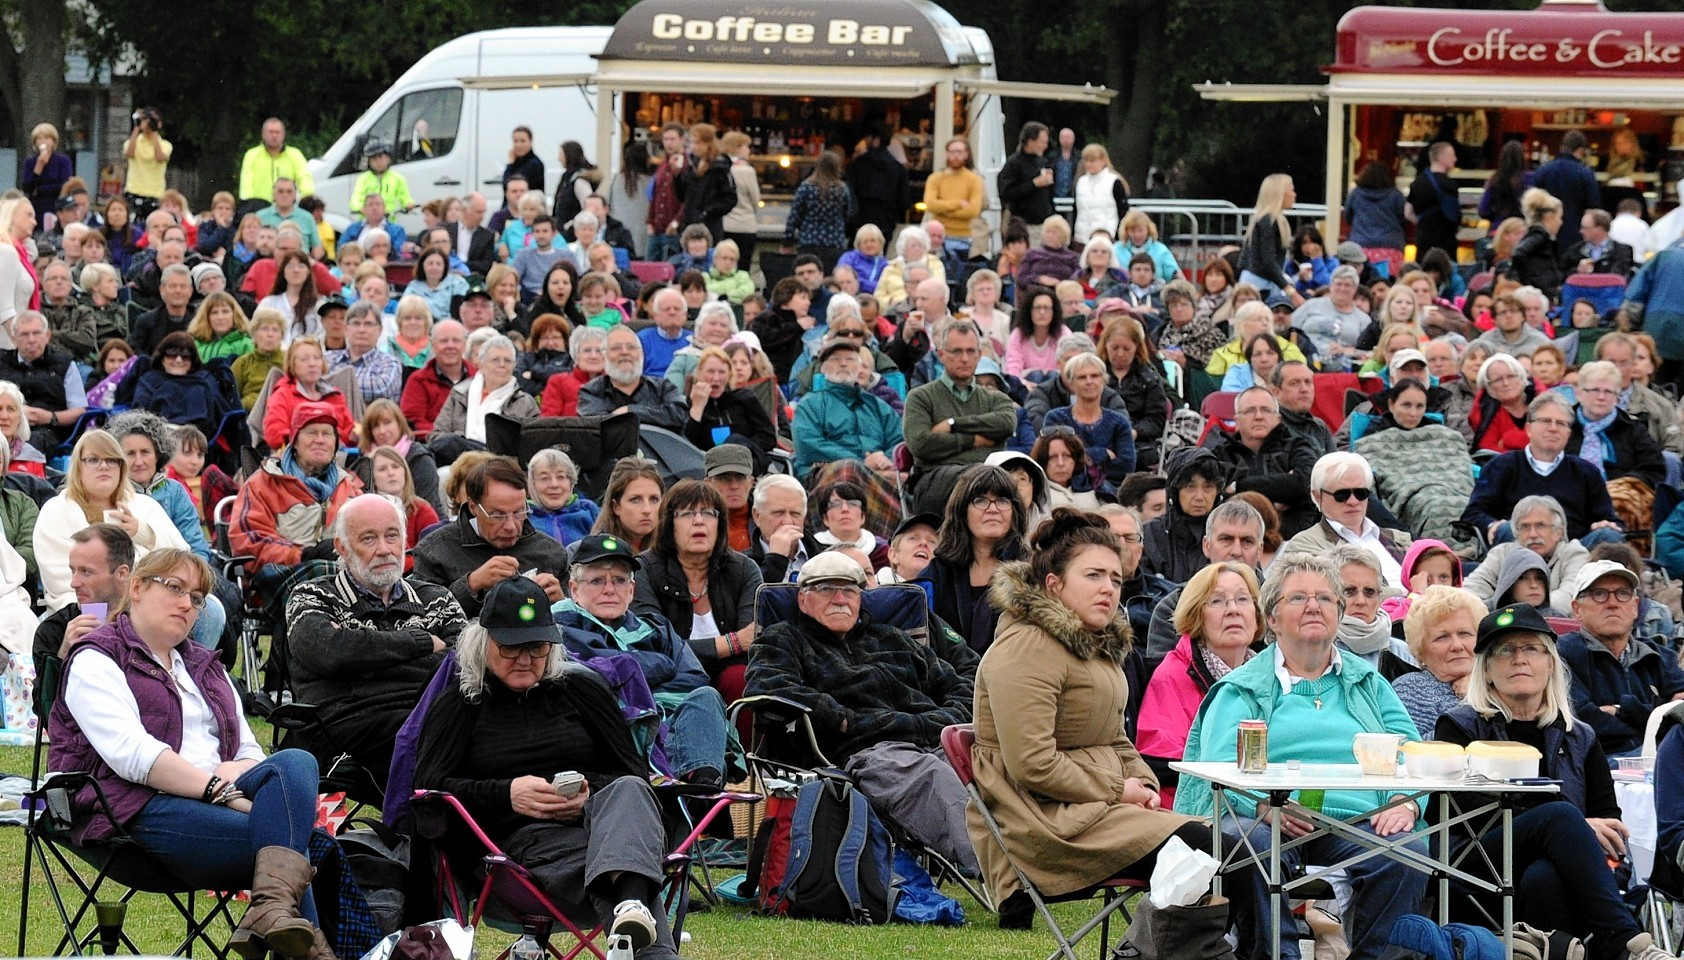 The crowd enjoys the BP sponsored Opera at Duthie Park in Aberdeen